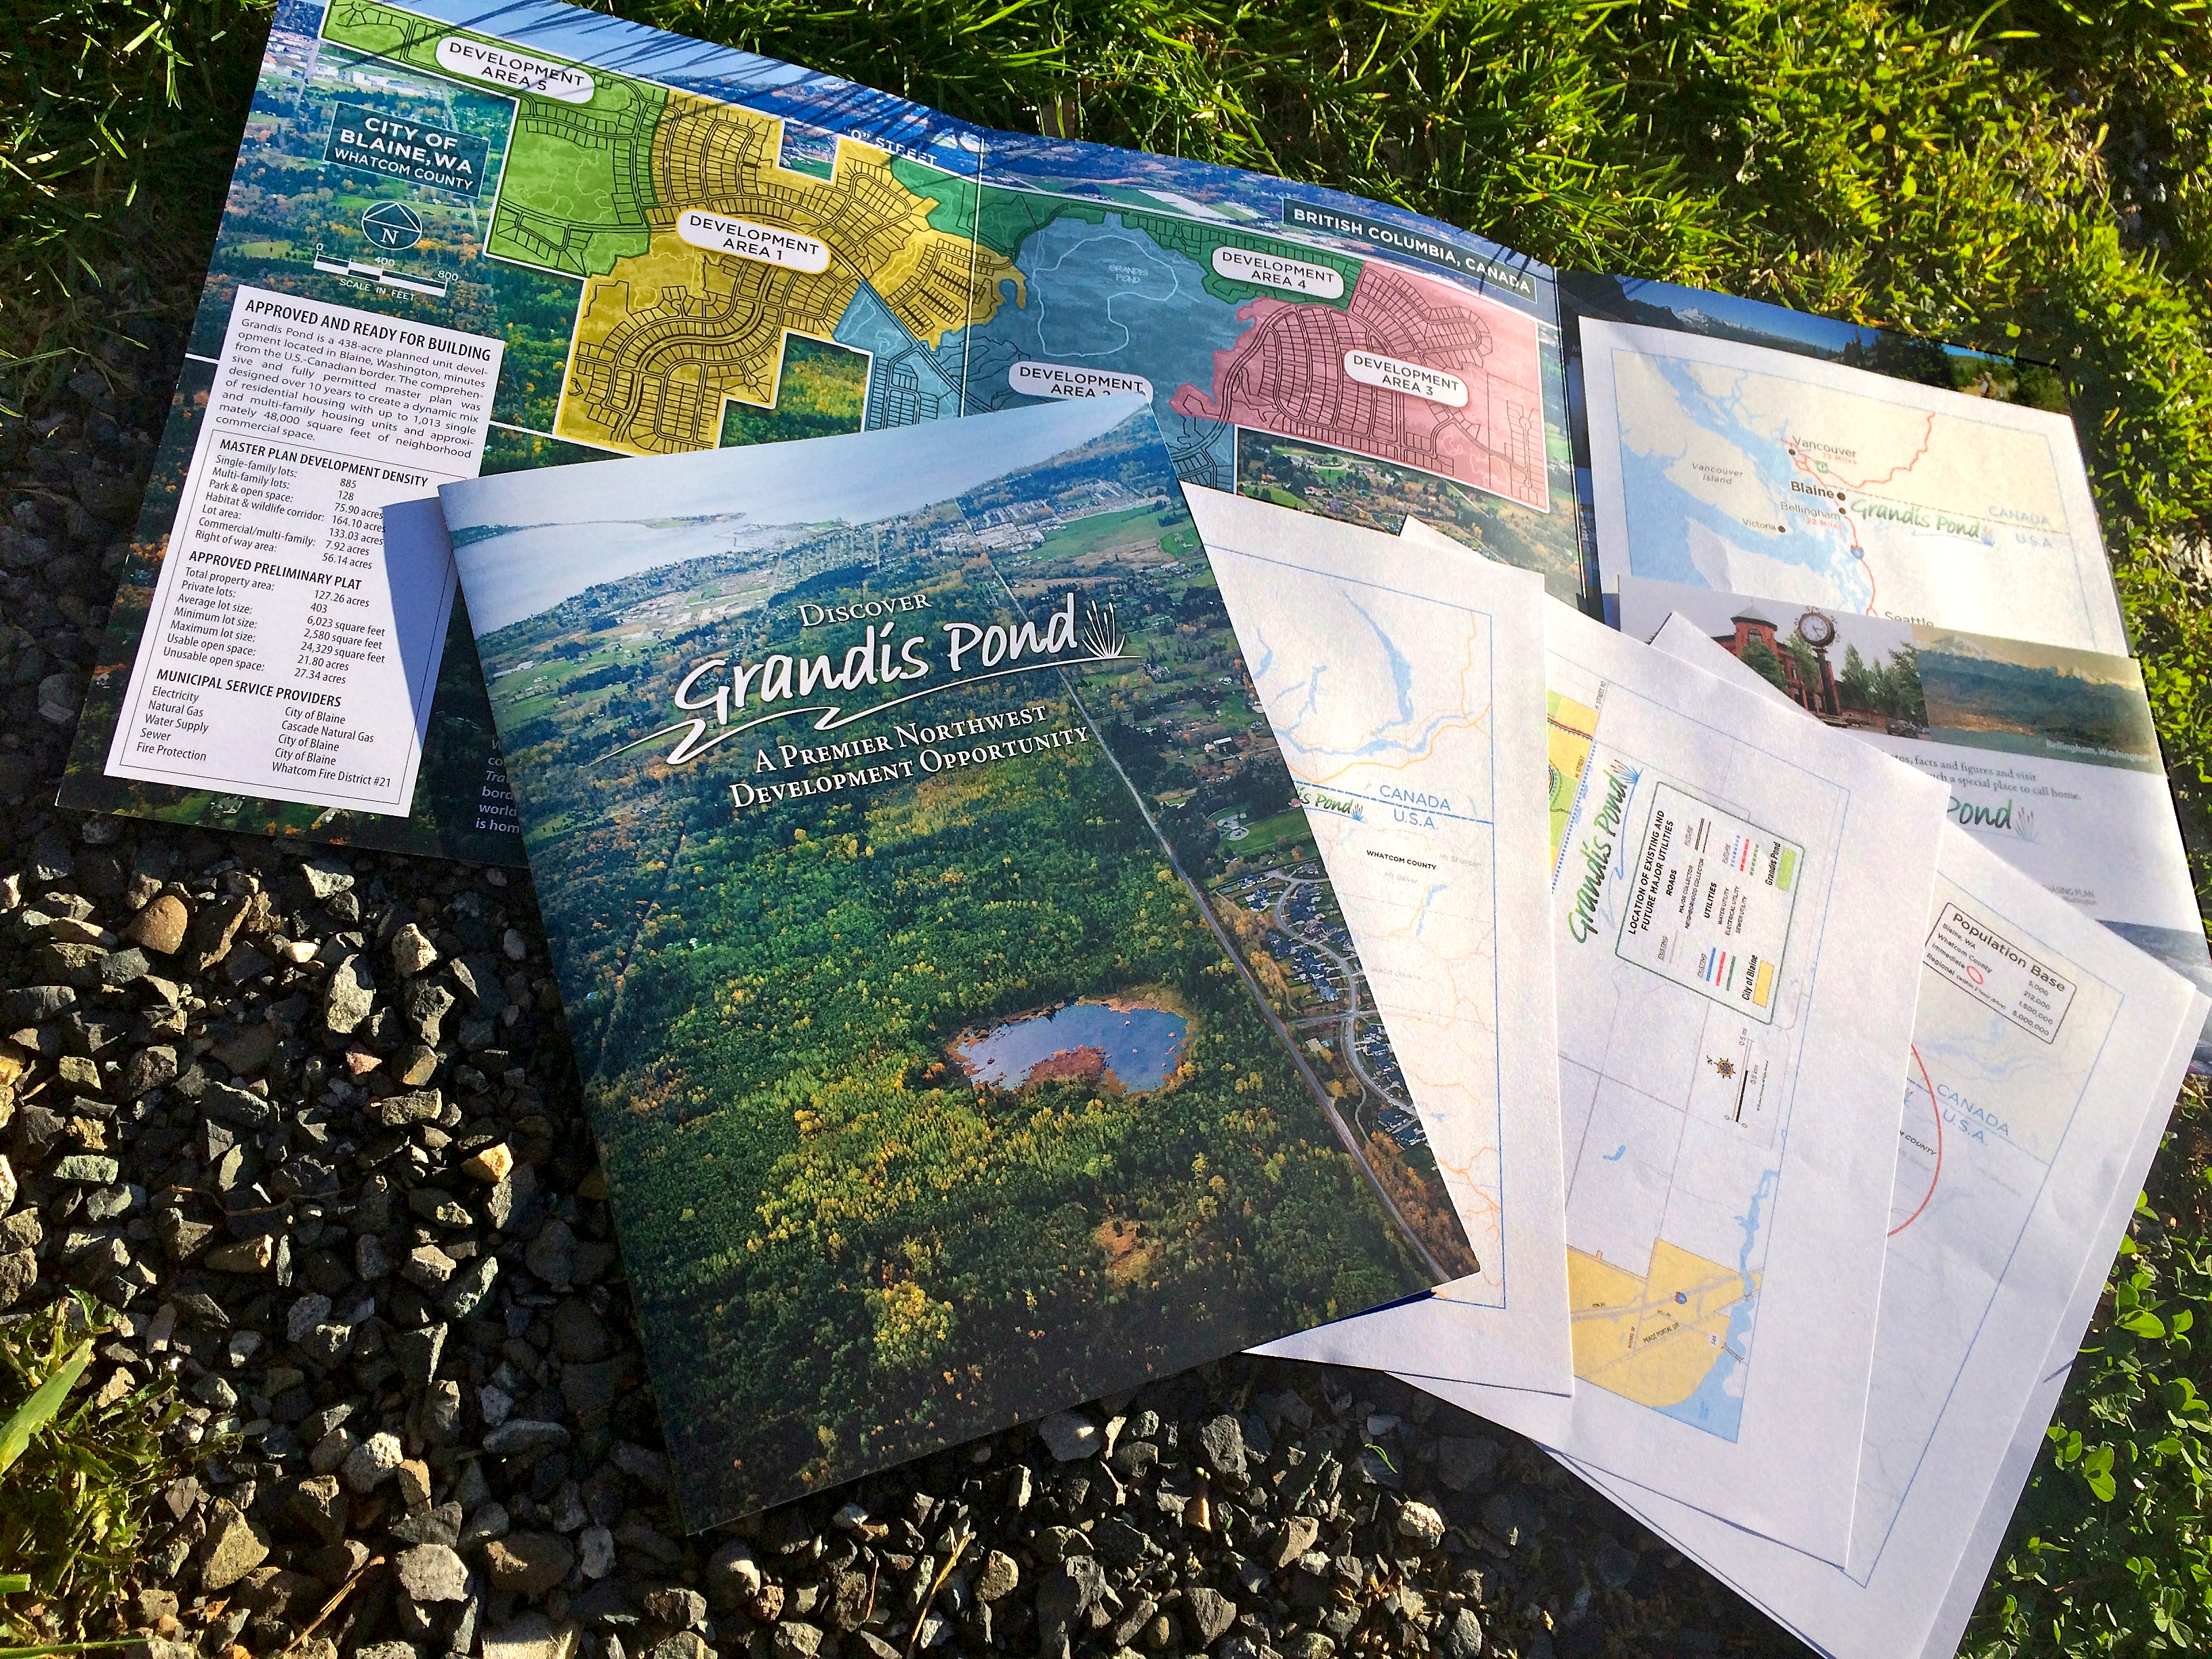 "Grandis Pond 9"" x 12"" (folded) tri-fold brochure with a set of simplified maps that insert int the pocket, showing regional location, population densities, site specifics, and distances to nearby cities in Canada and the stae of Washington."